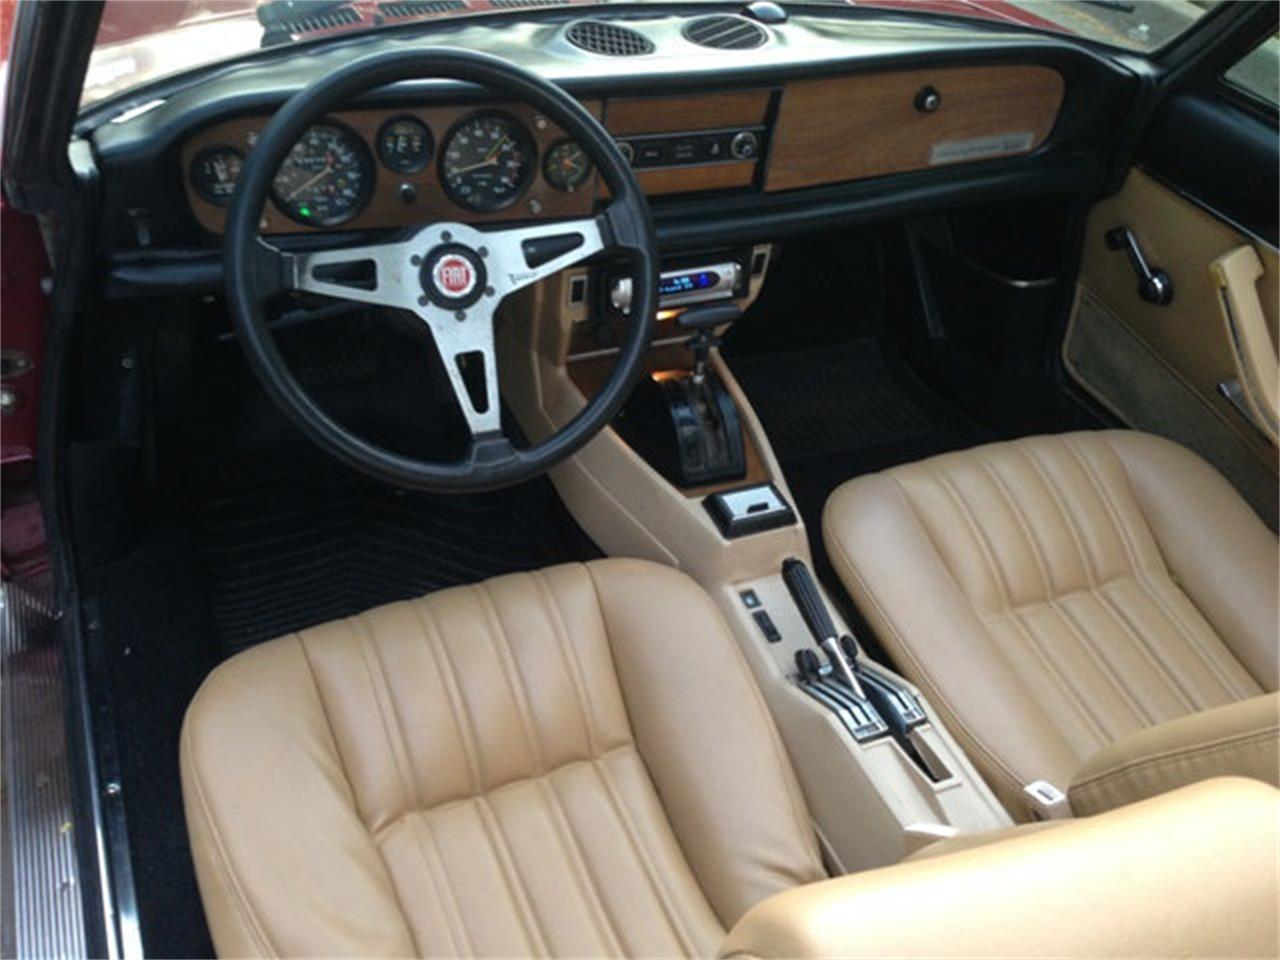 1982 Fiat 124 for sale in Duluth, GA – photo 17